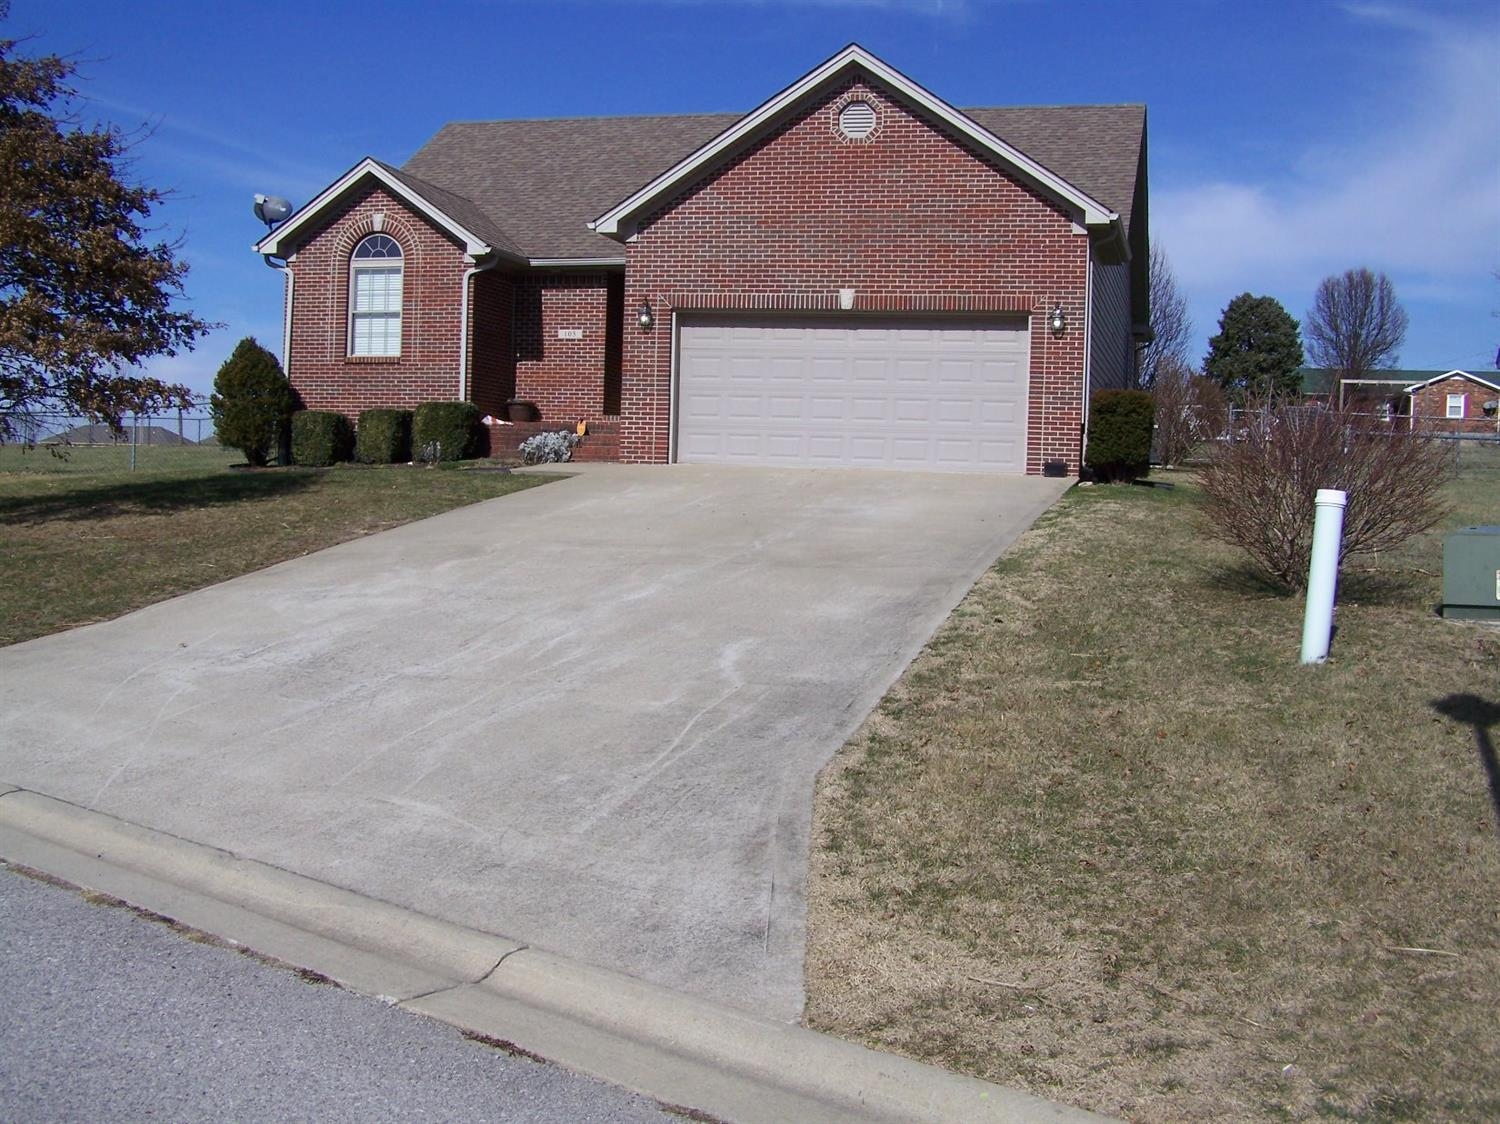 Home For Sale at 133 Grace Ct, Harrodsburg, KY 40330